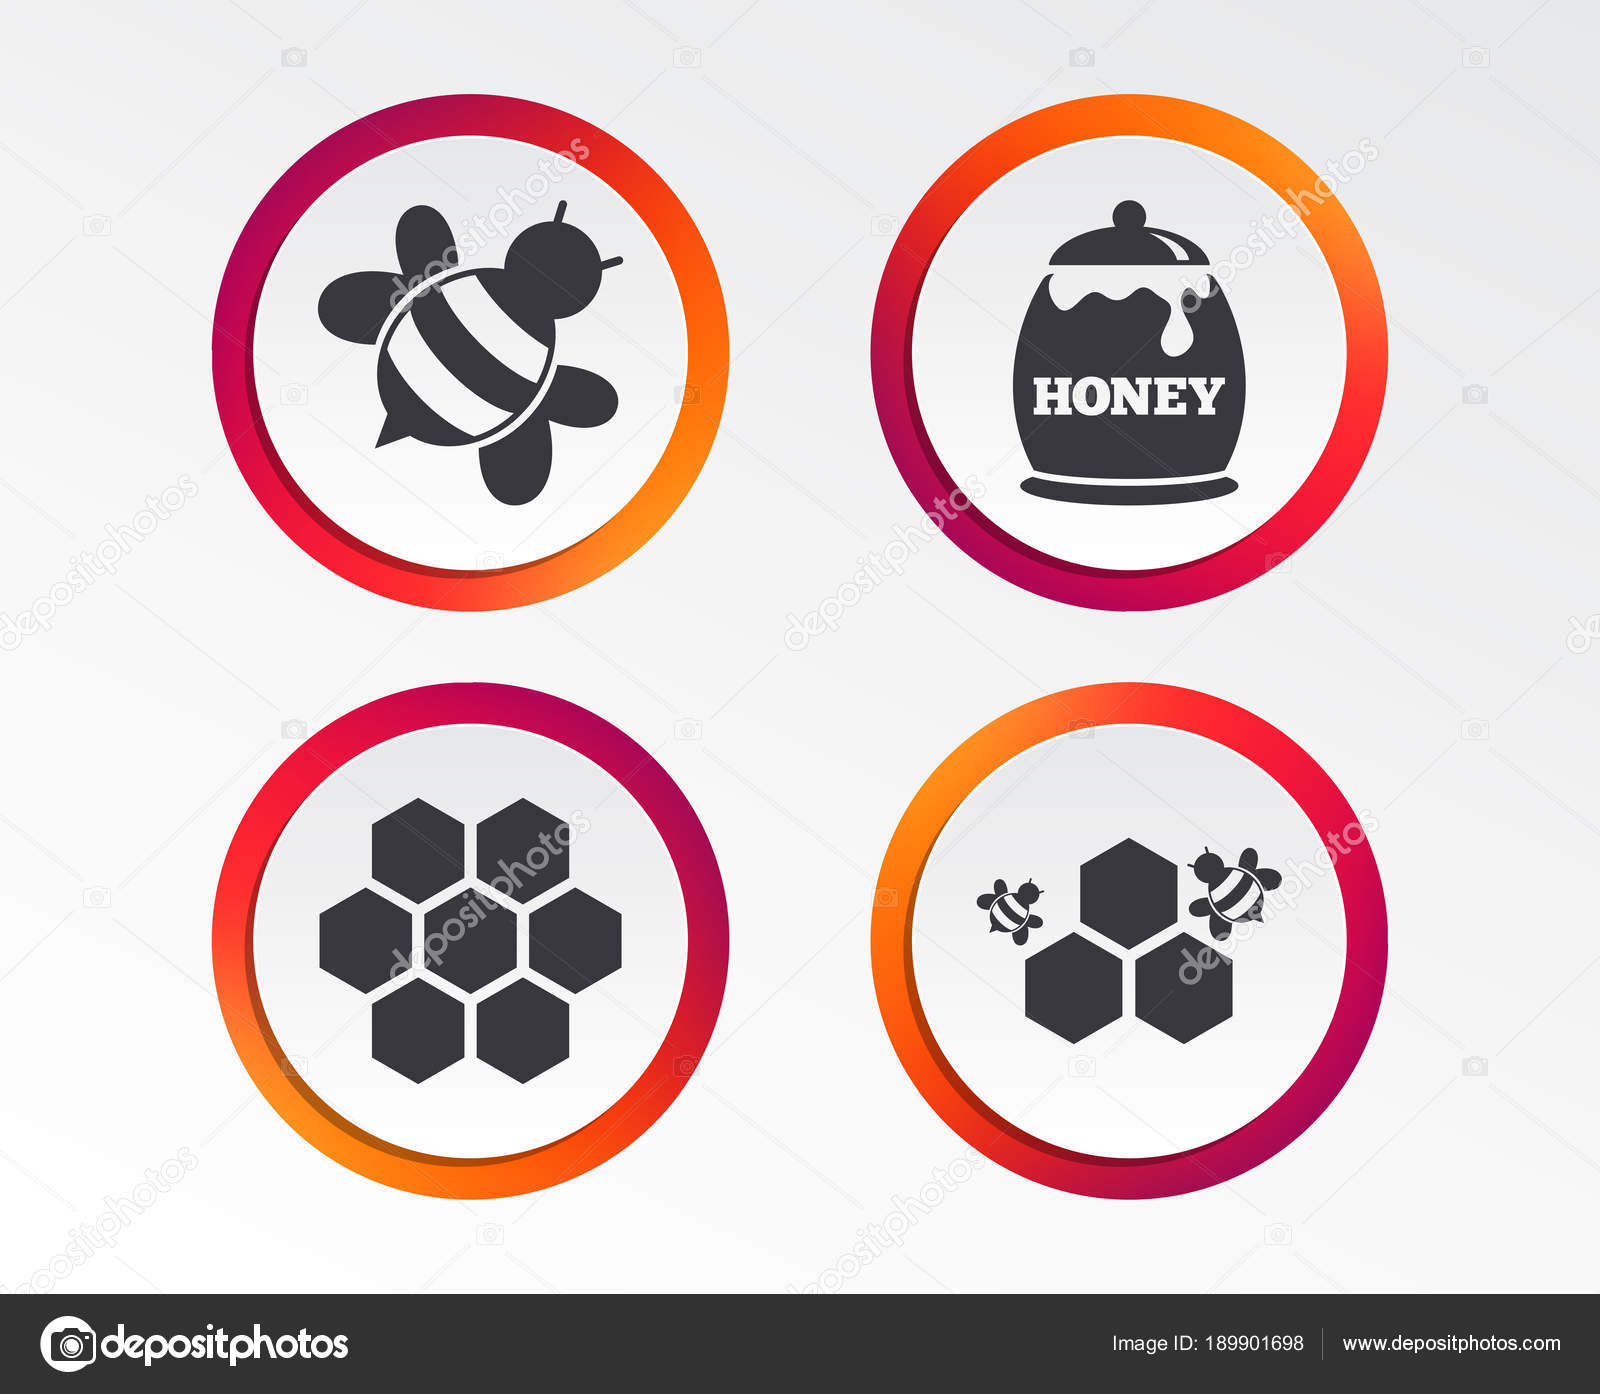 honey icon honeycomb cells bees symbol sweet natural food signs